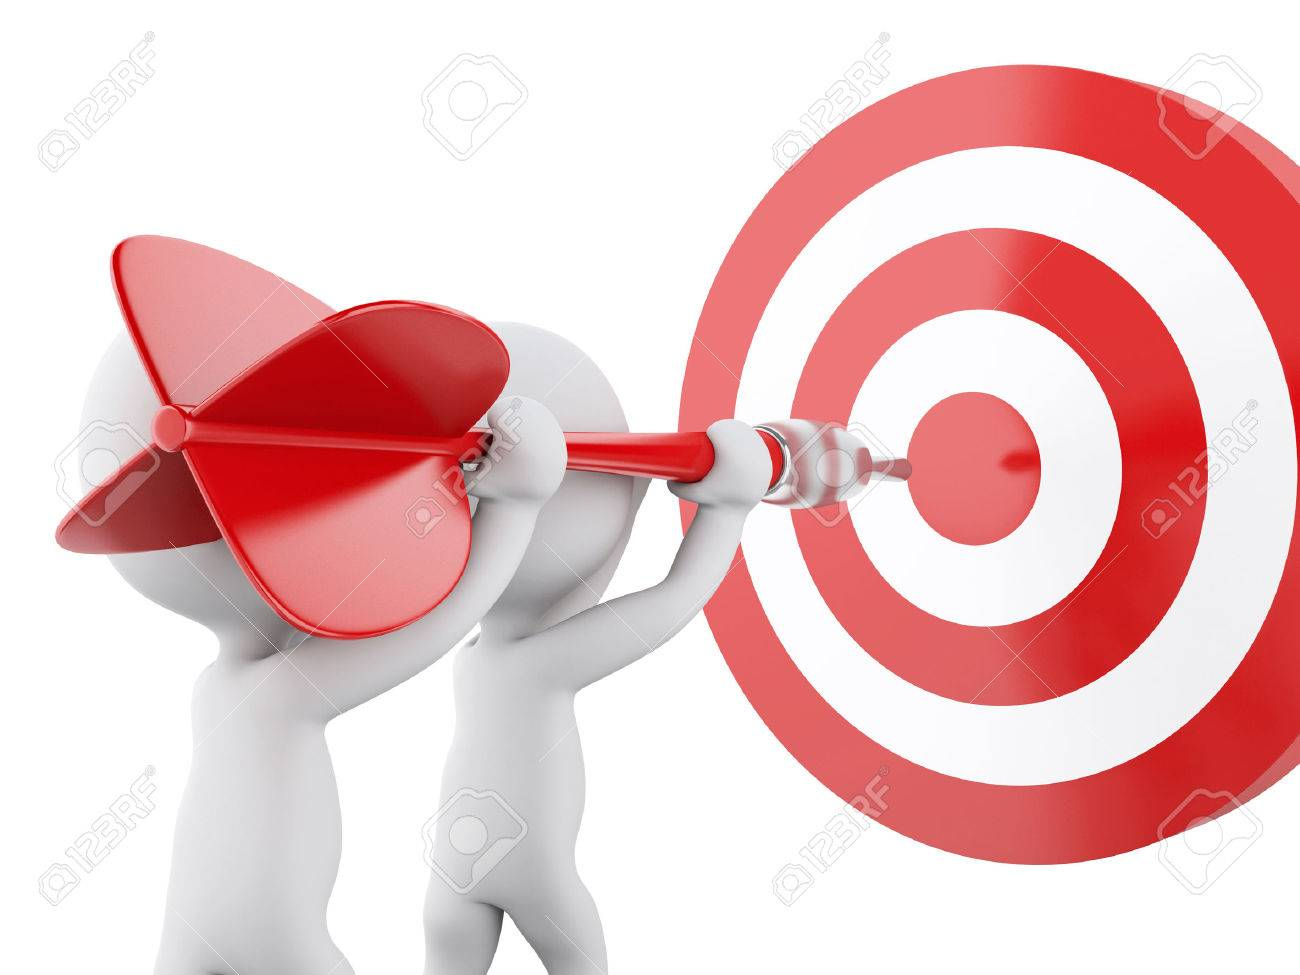 3d renderer image. White people with dart and target. Success in business. Isolated white background - 46391590